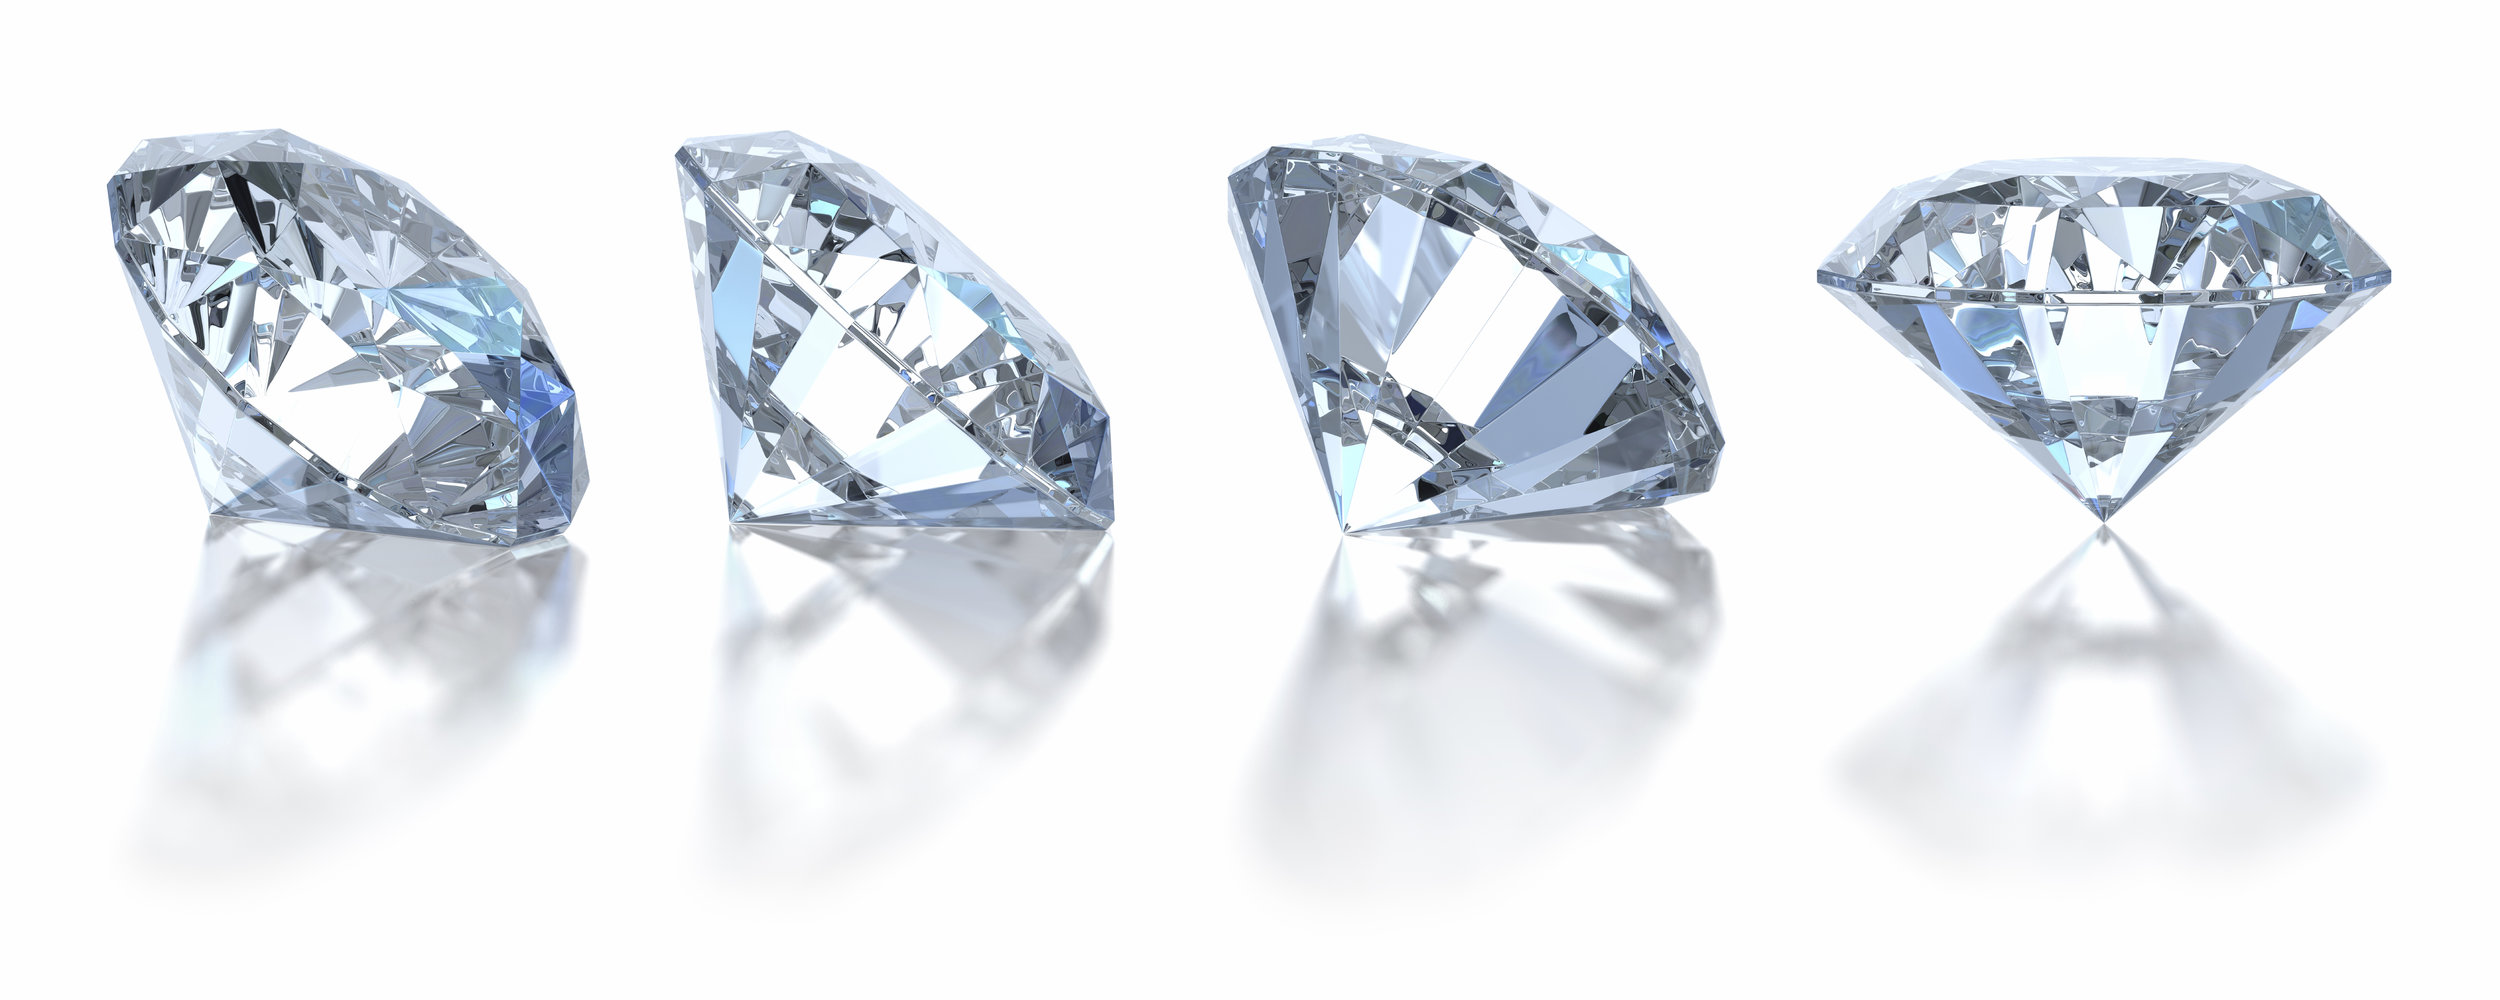 Yes, they're real, and they're spectacular. - Our diamonds are certified genuine diamonds: chemically, structurally, and optically identical to mined diamonds, without the social and environmental damage. We provide IGI certification with each diamond, attesting to its quality and characteristics.